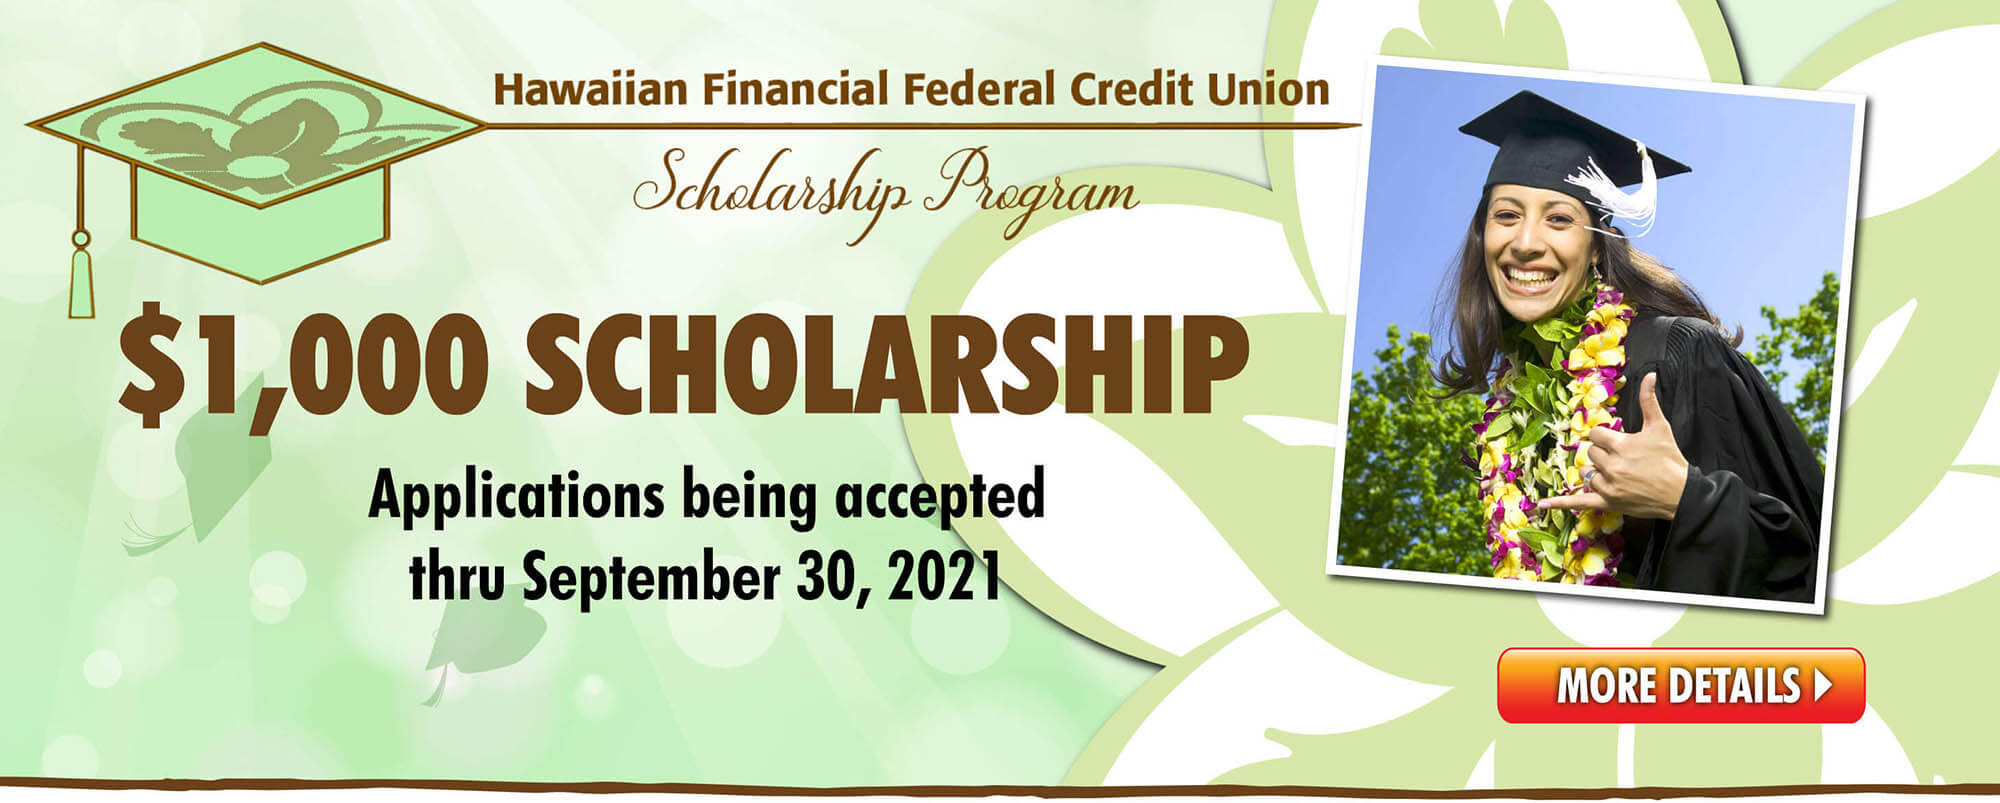 HIFICU Scholarship applications being accepted thru September 30, 2021